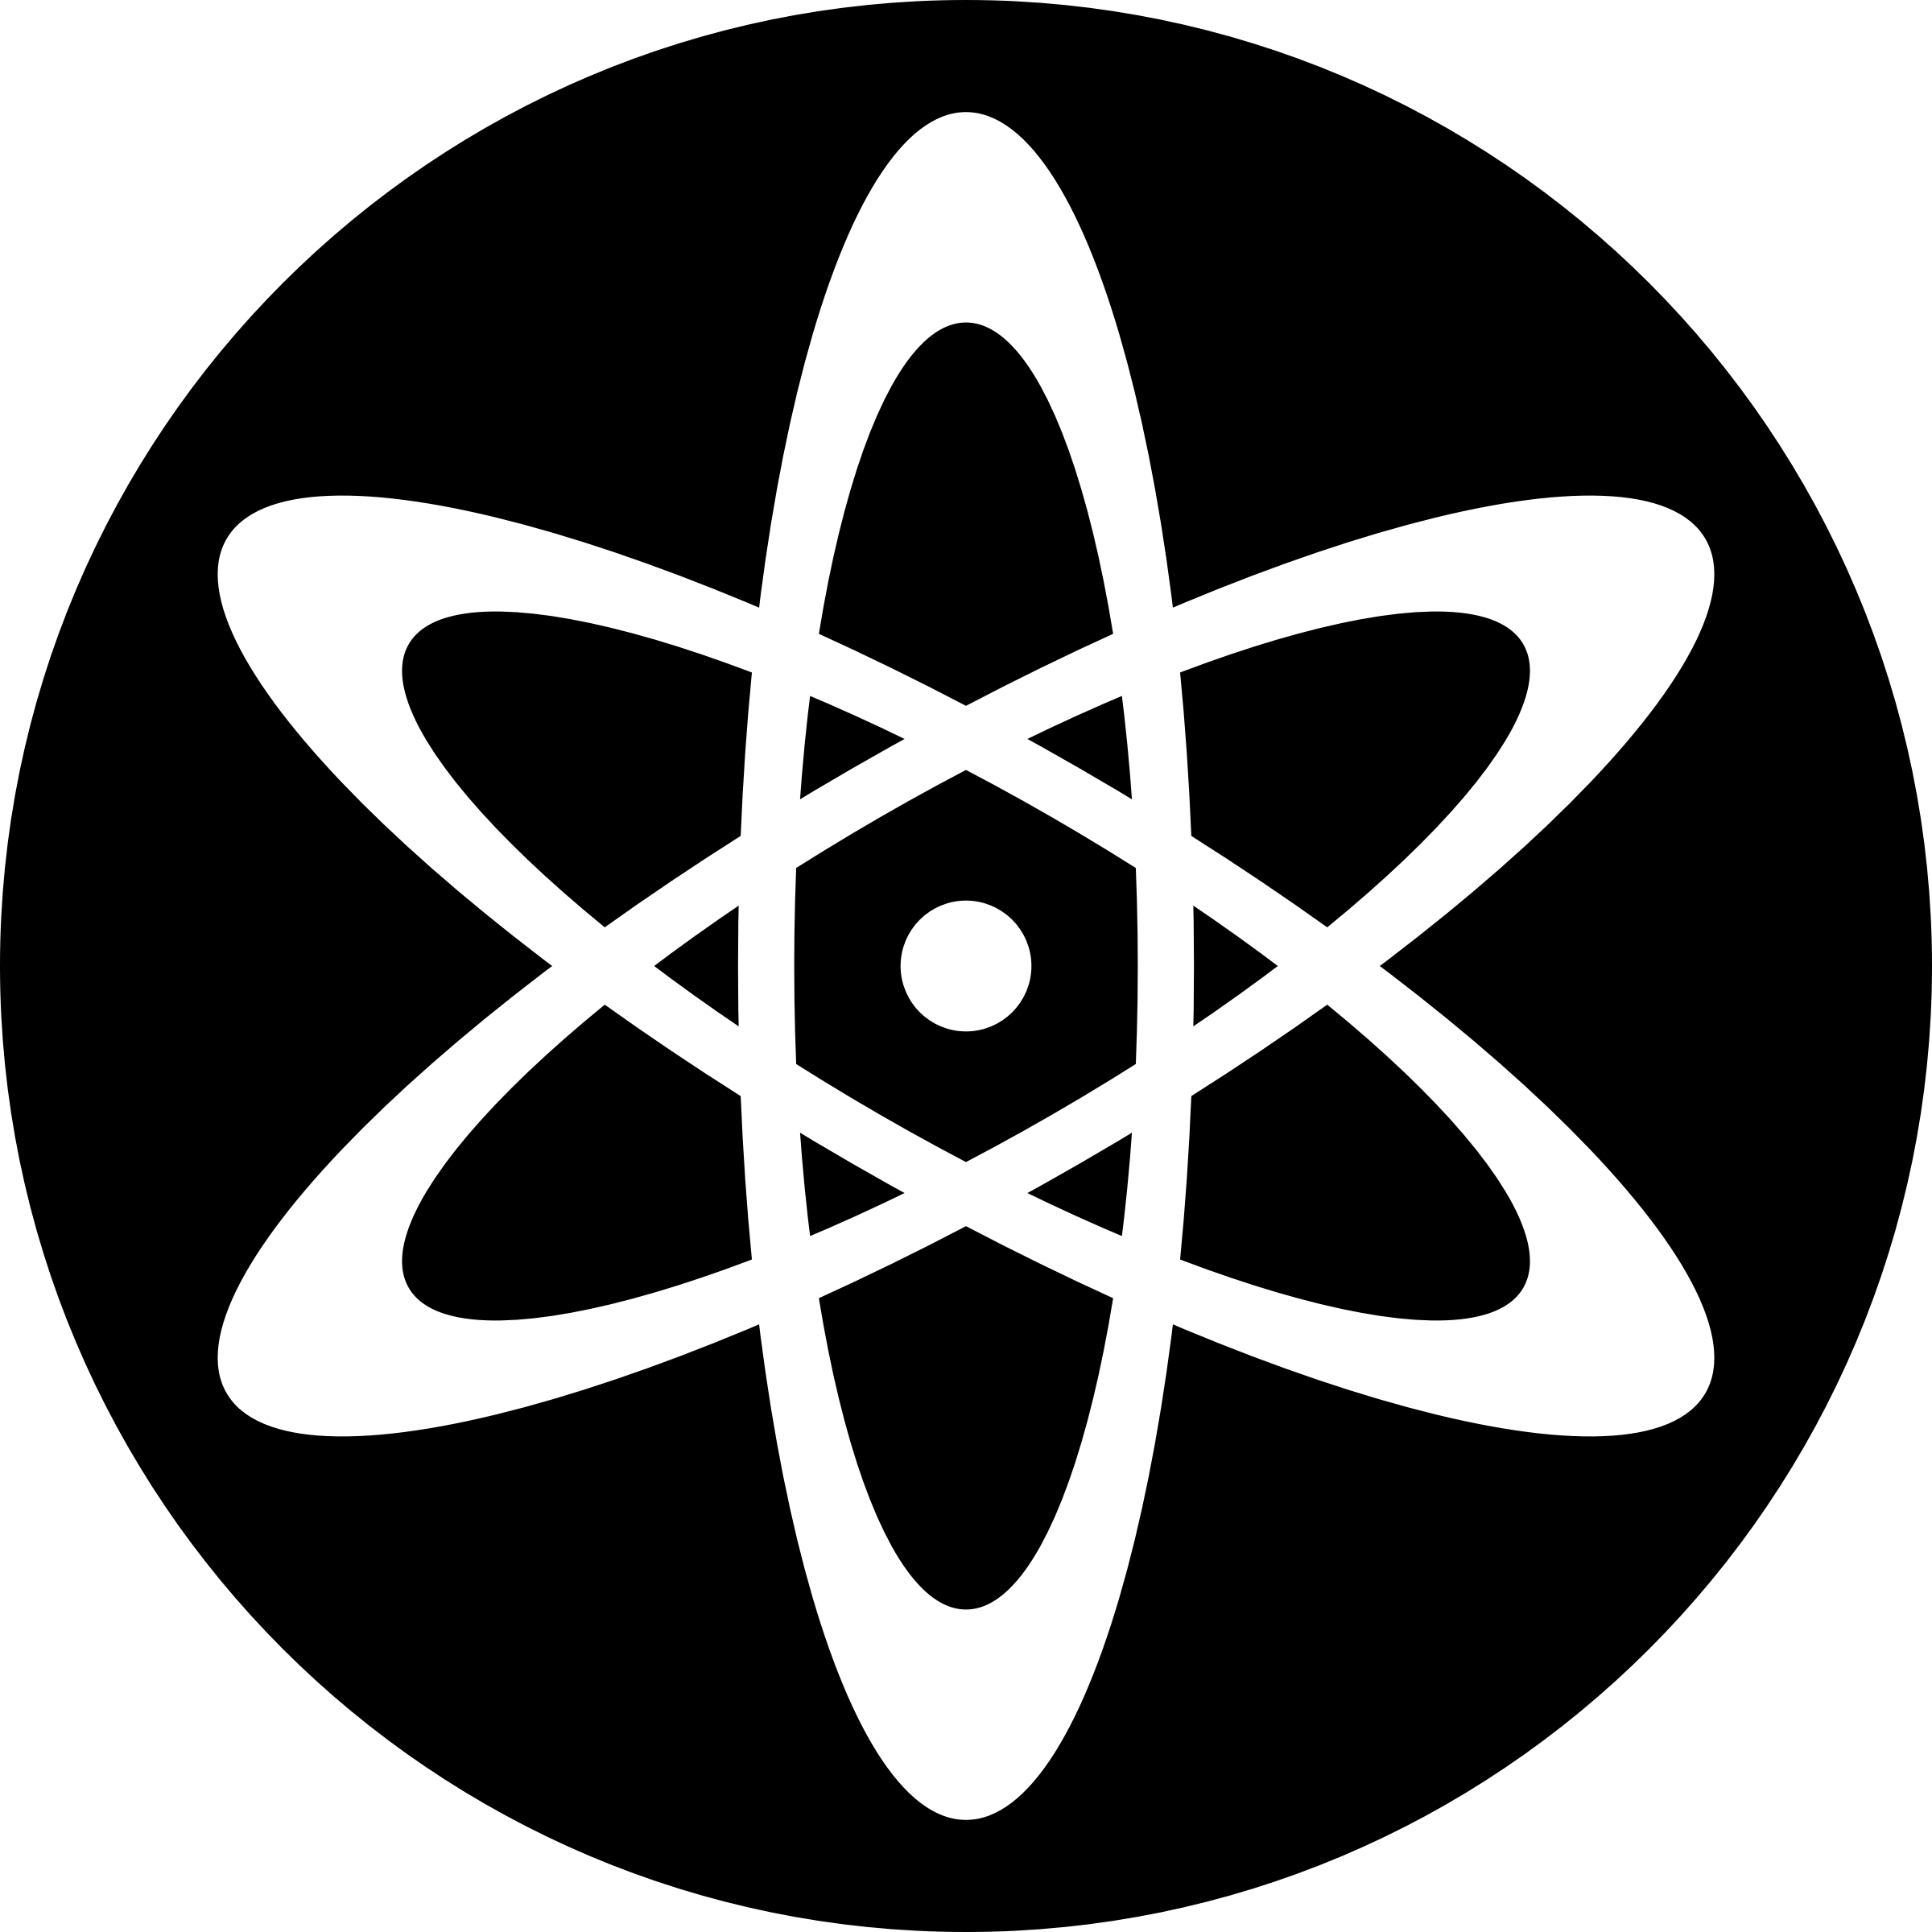 Atom symbol png. Icon icons free and